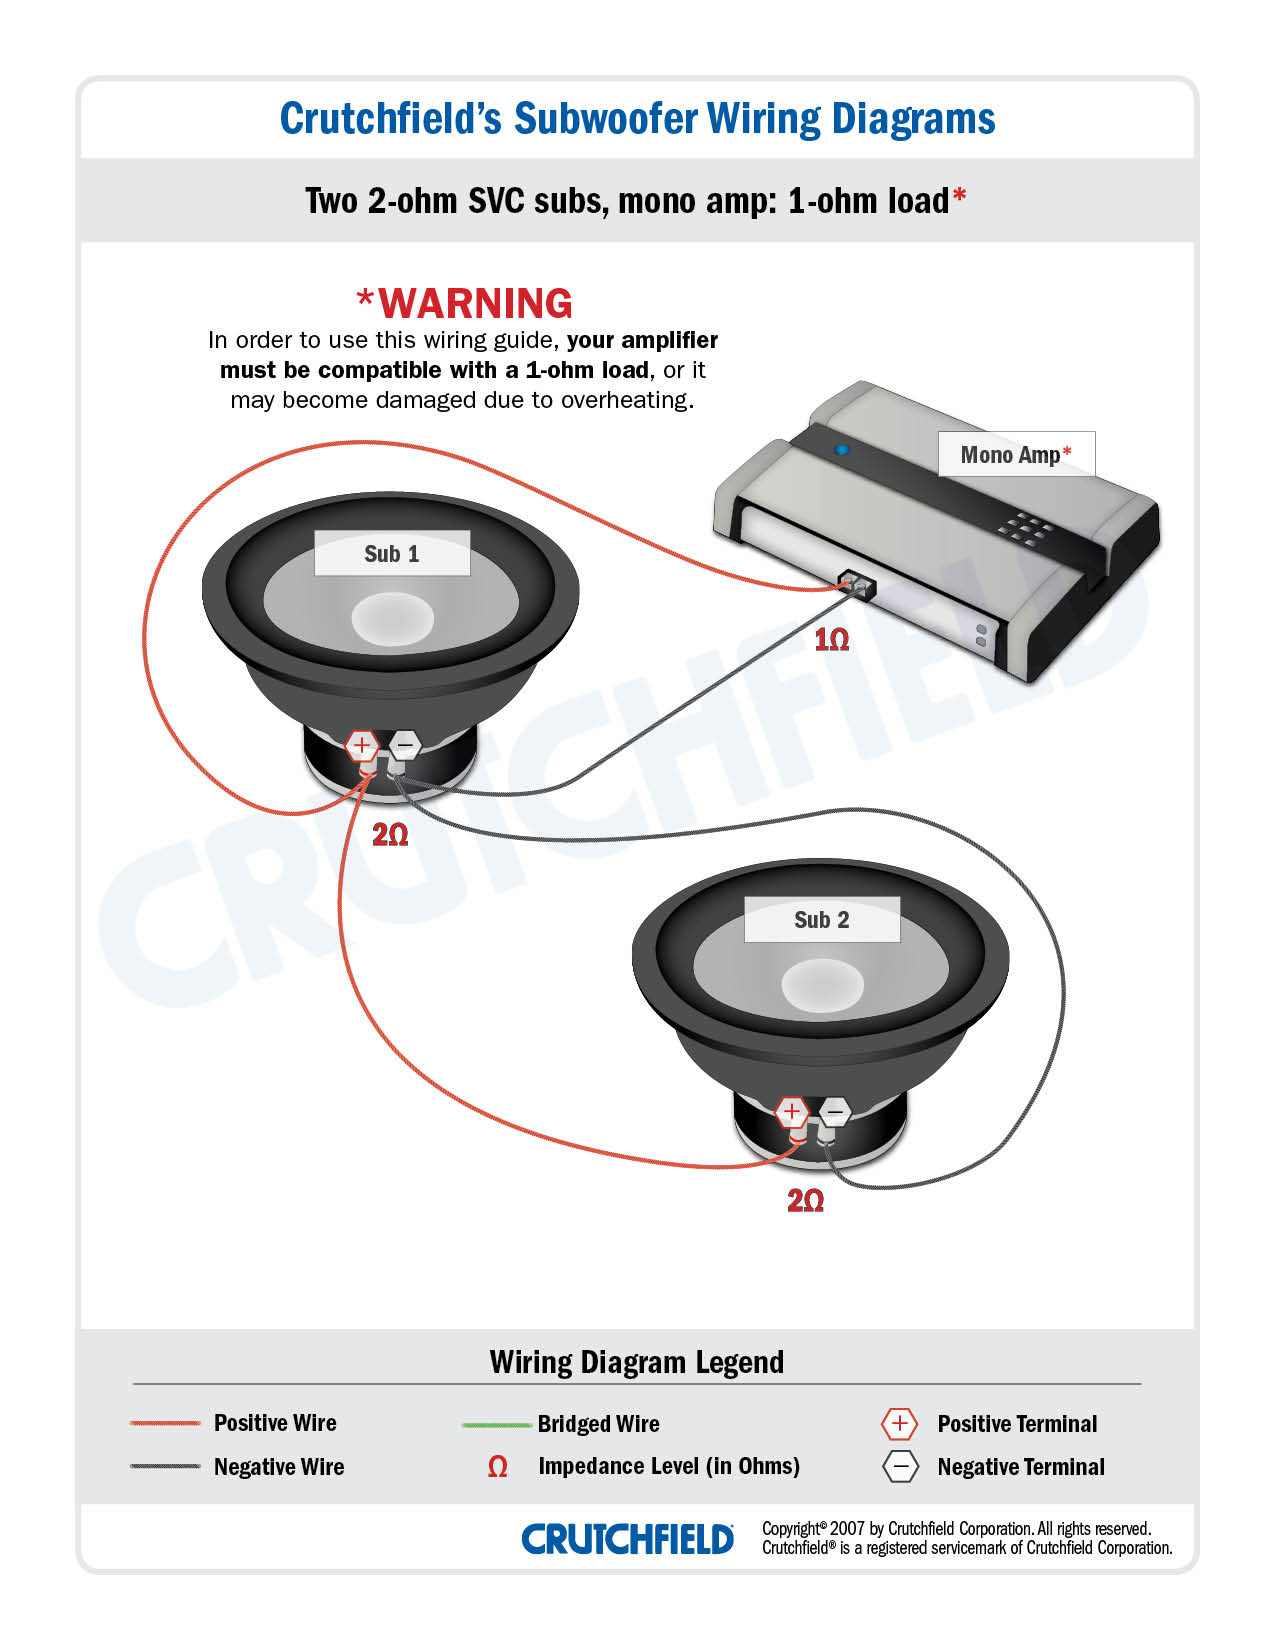 Subwoofer Wiring Diagrams How To Wire Your Subs 7 Round Diagram Break Away However The Fact Amp Cuts In And Out Tells Me That Either It Really Cant Handle A 1 Ohm Load Or Its Defective